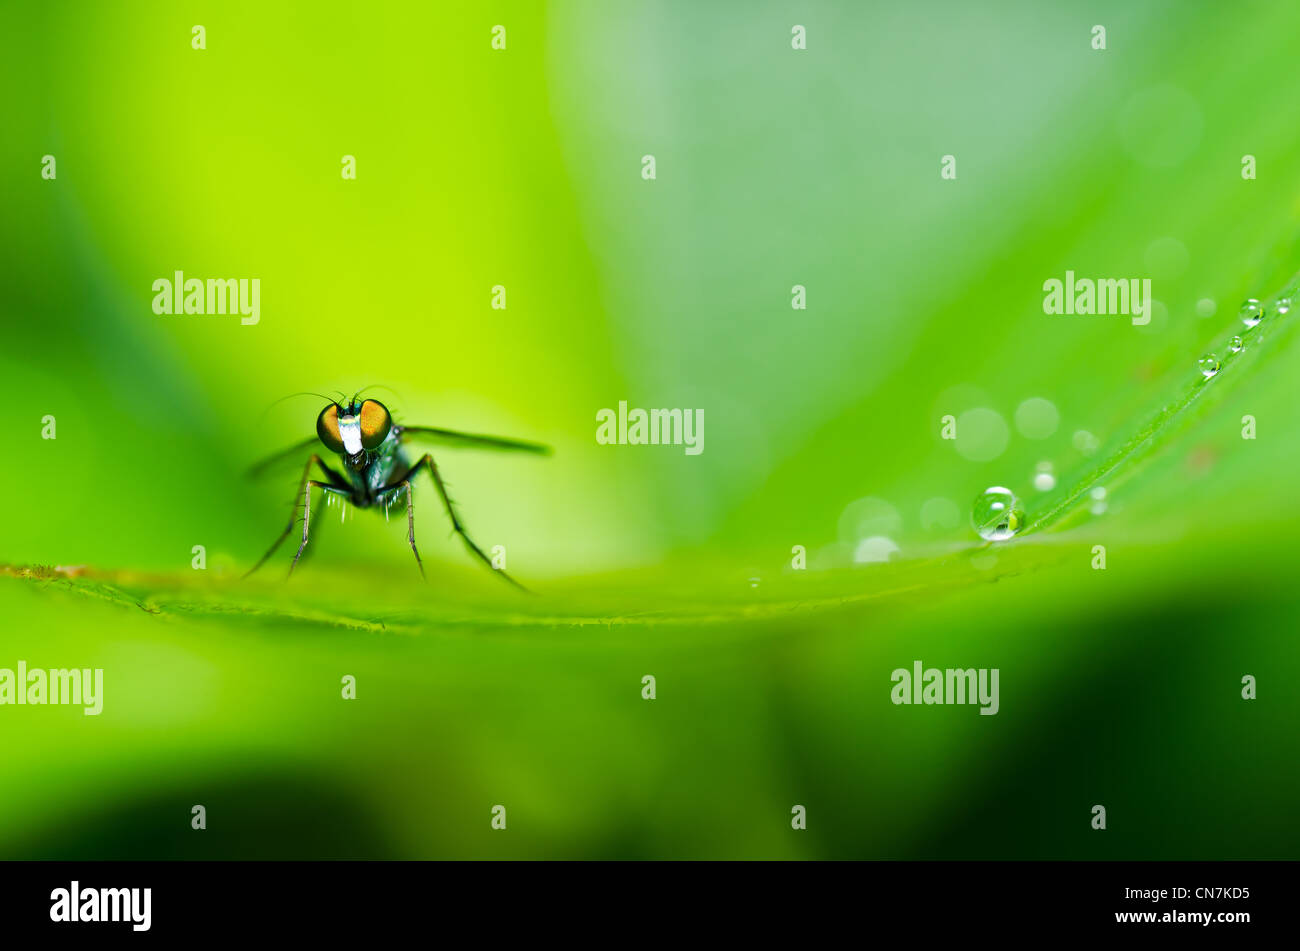 long legs fly in green nature or in the city - Stock Image